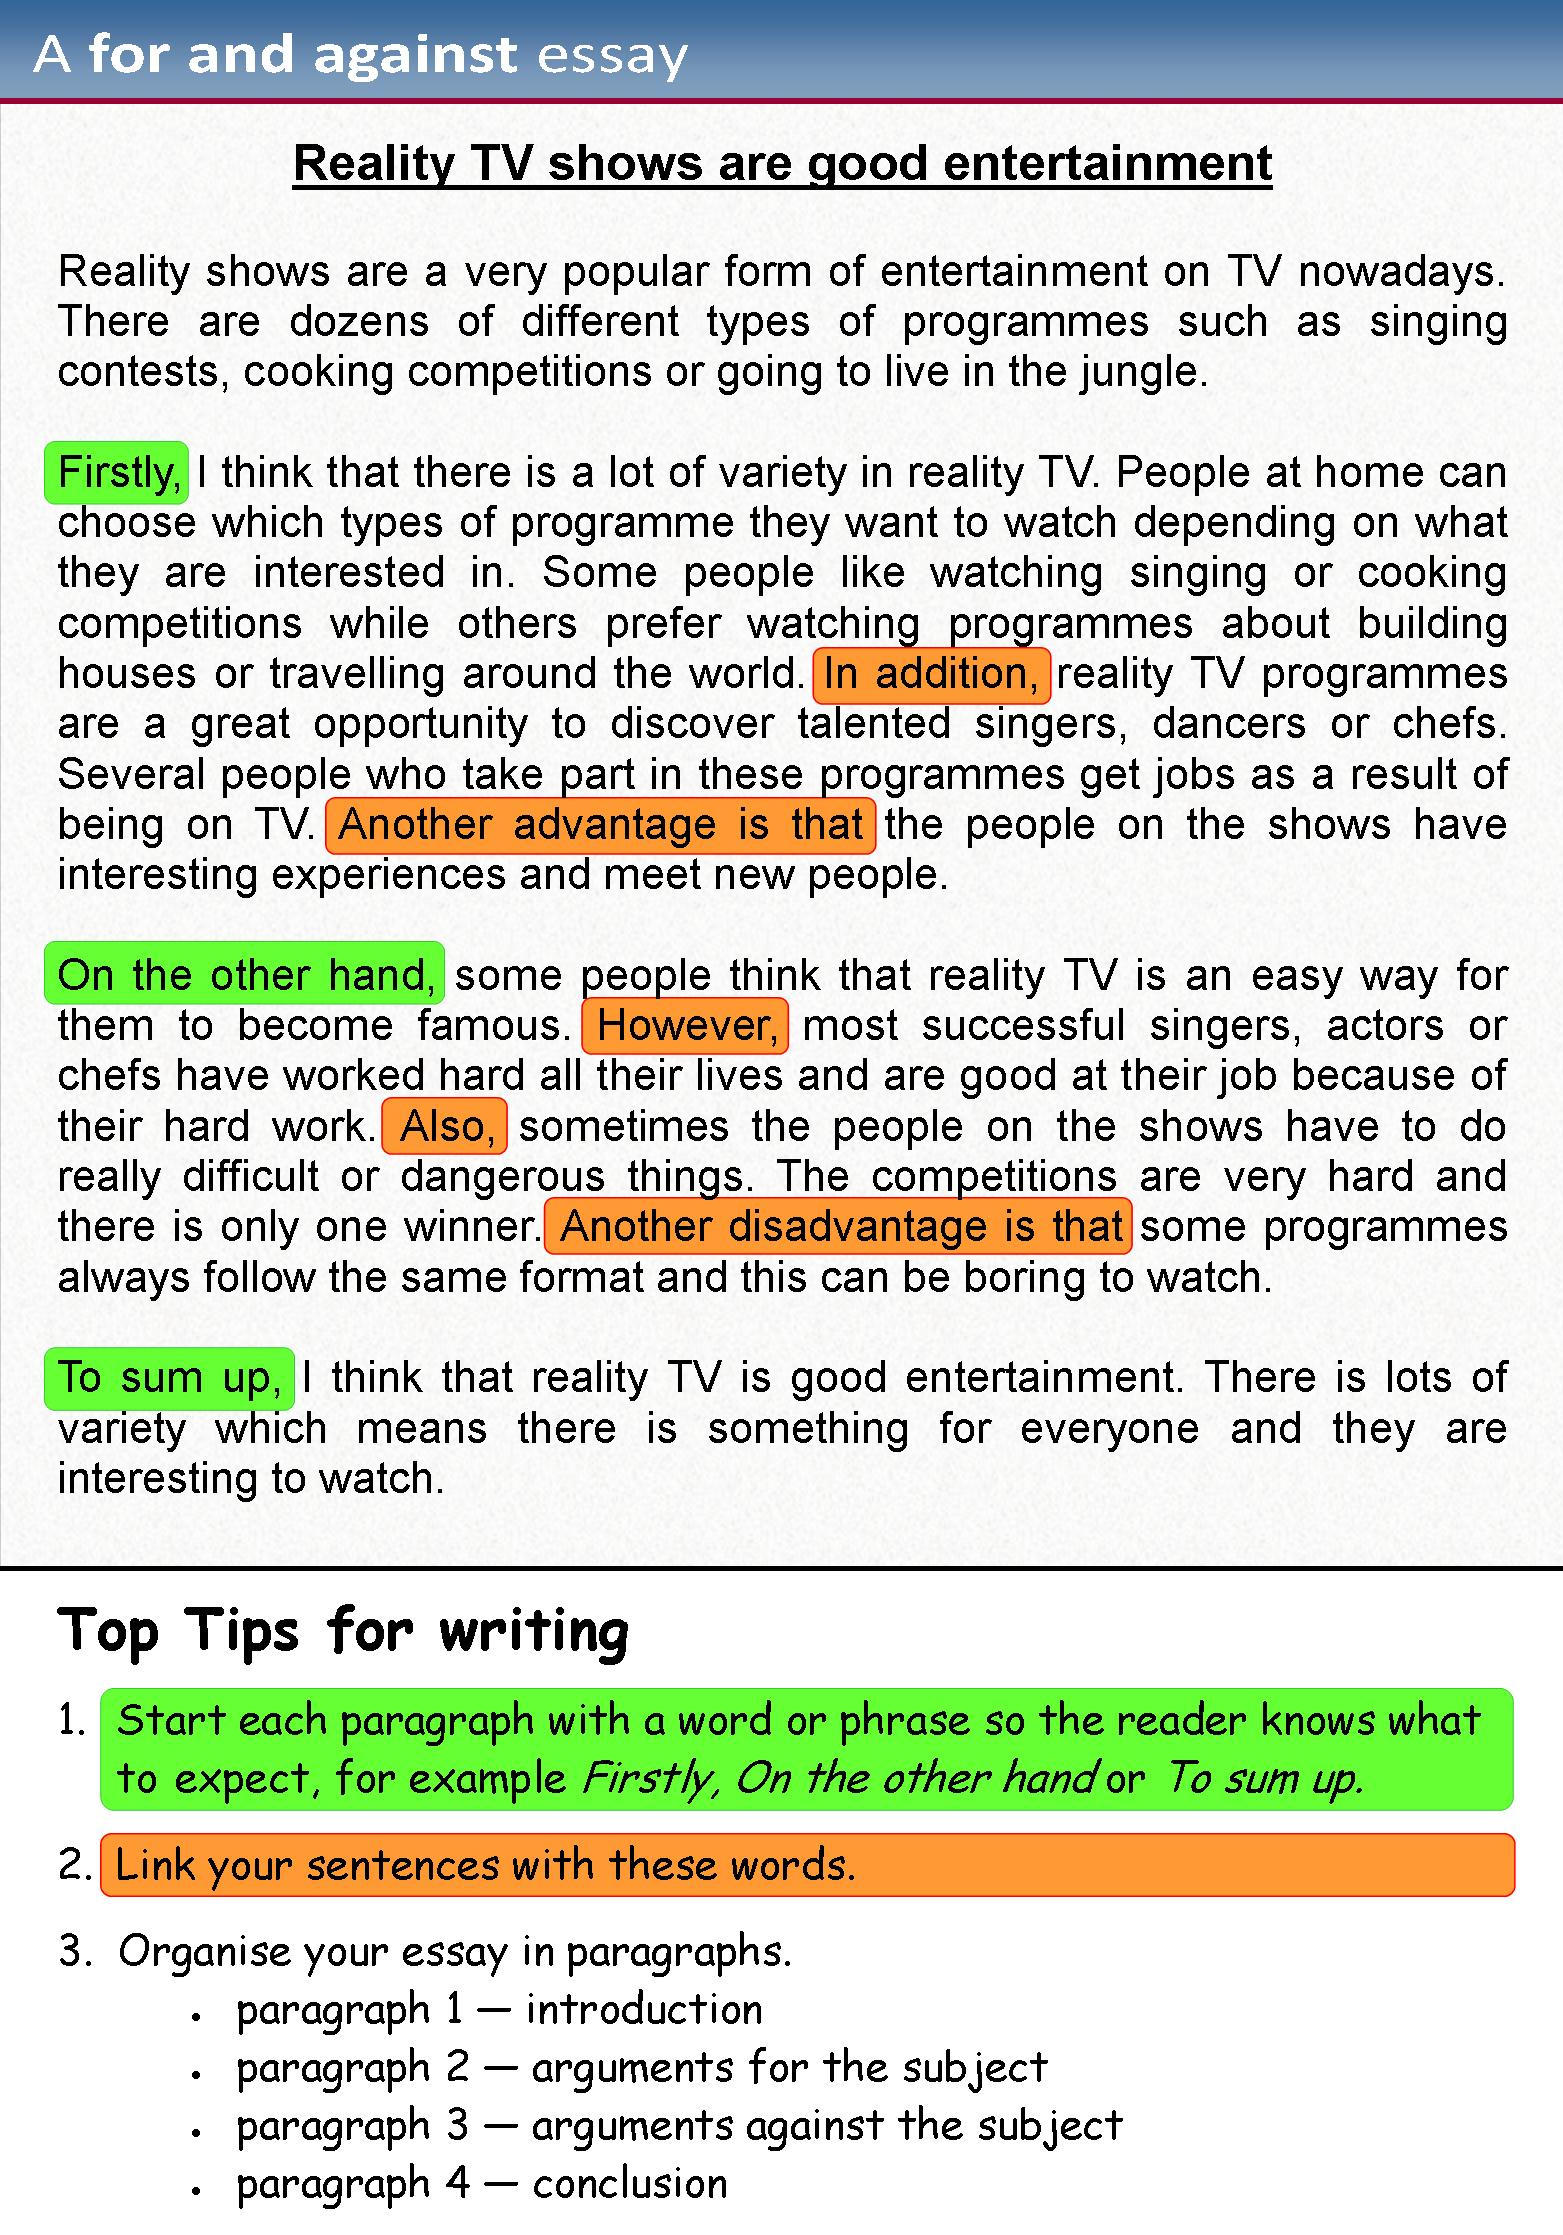 Example Of Essay Writing A For And Against Essay Learnenglish Teens British Council